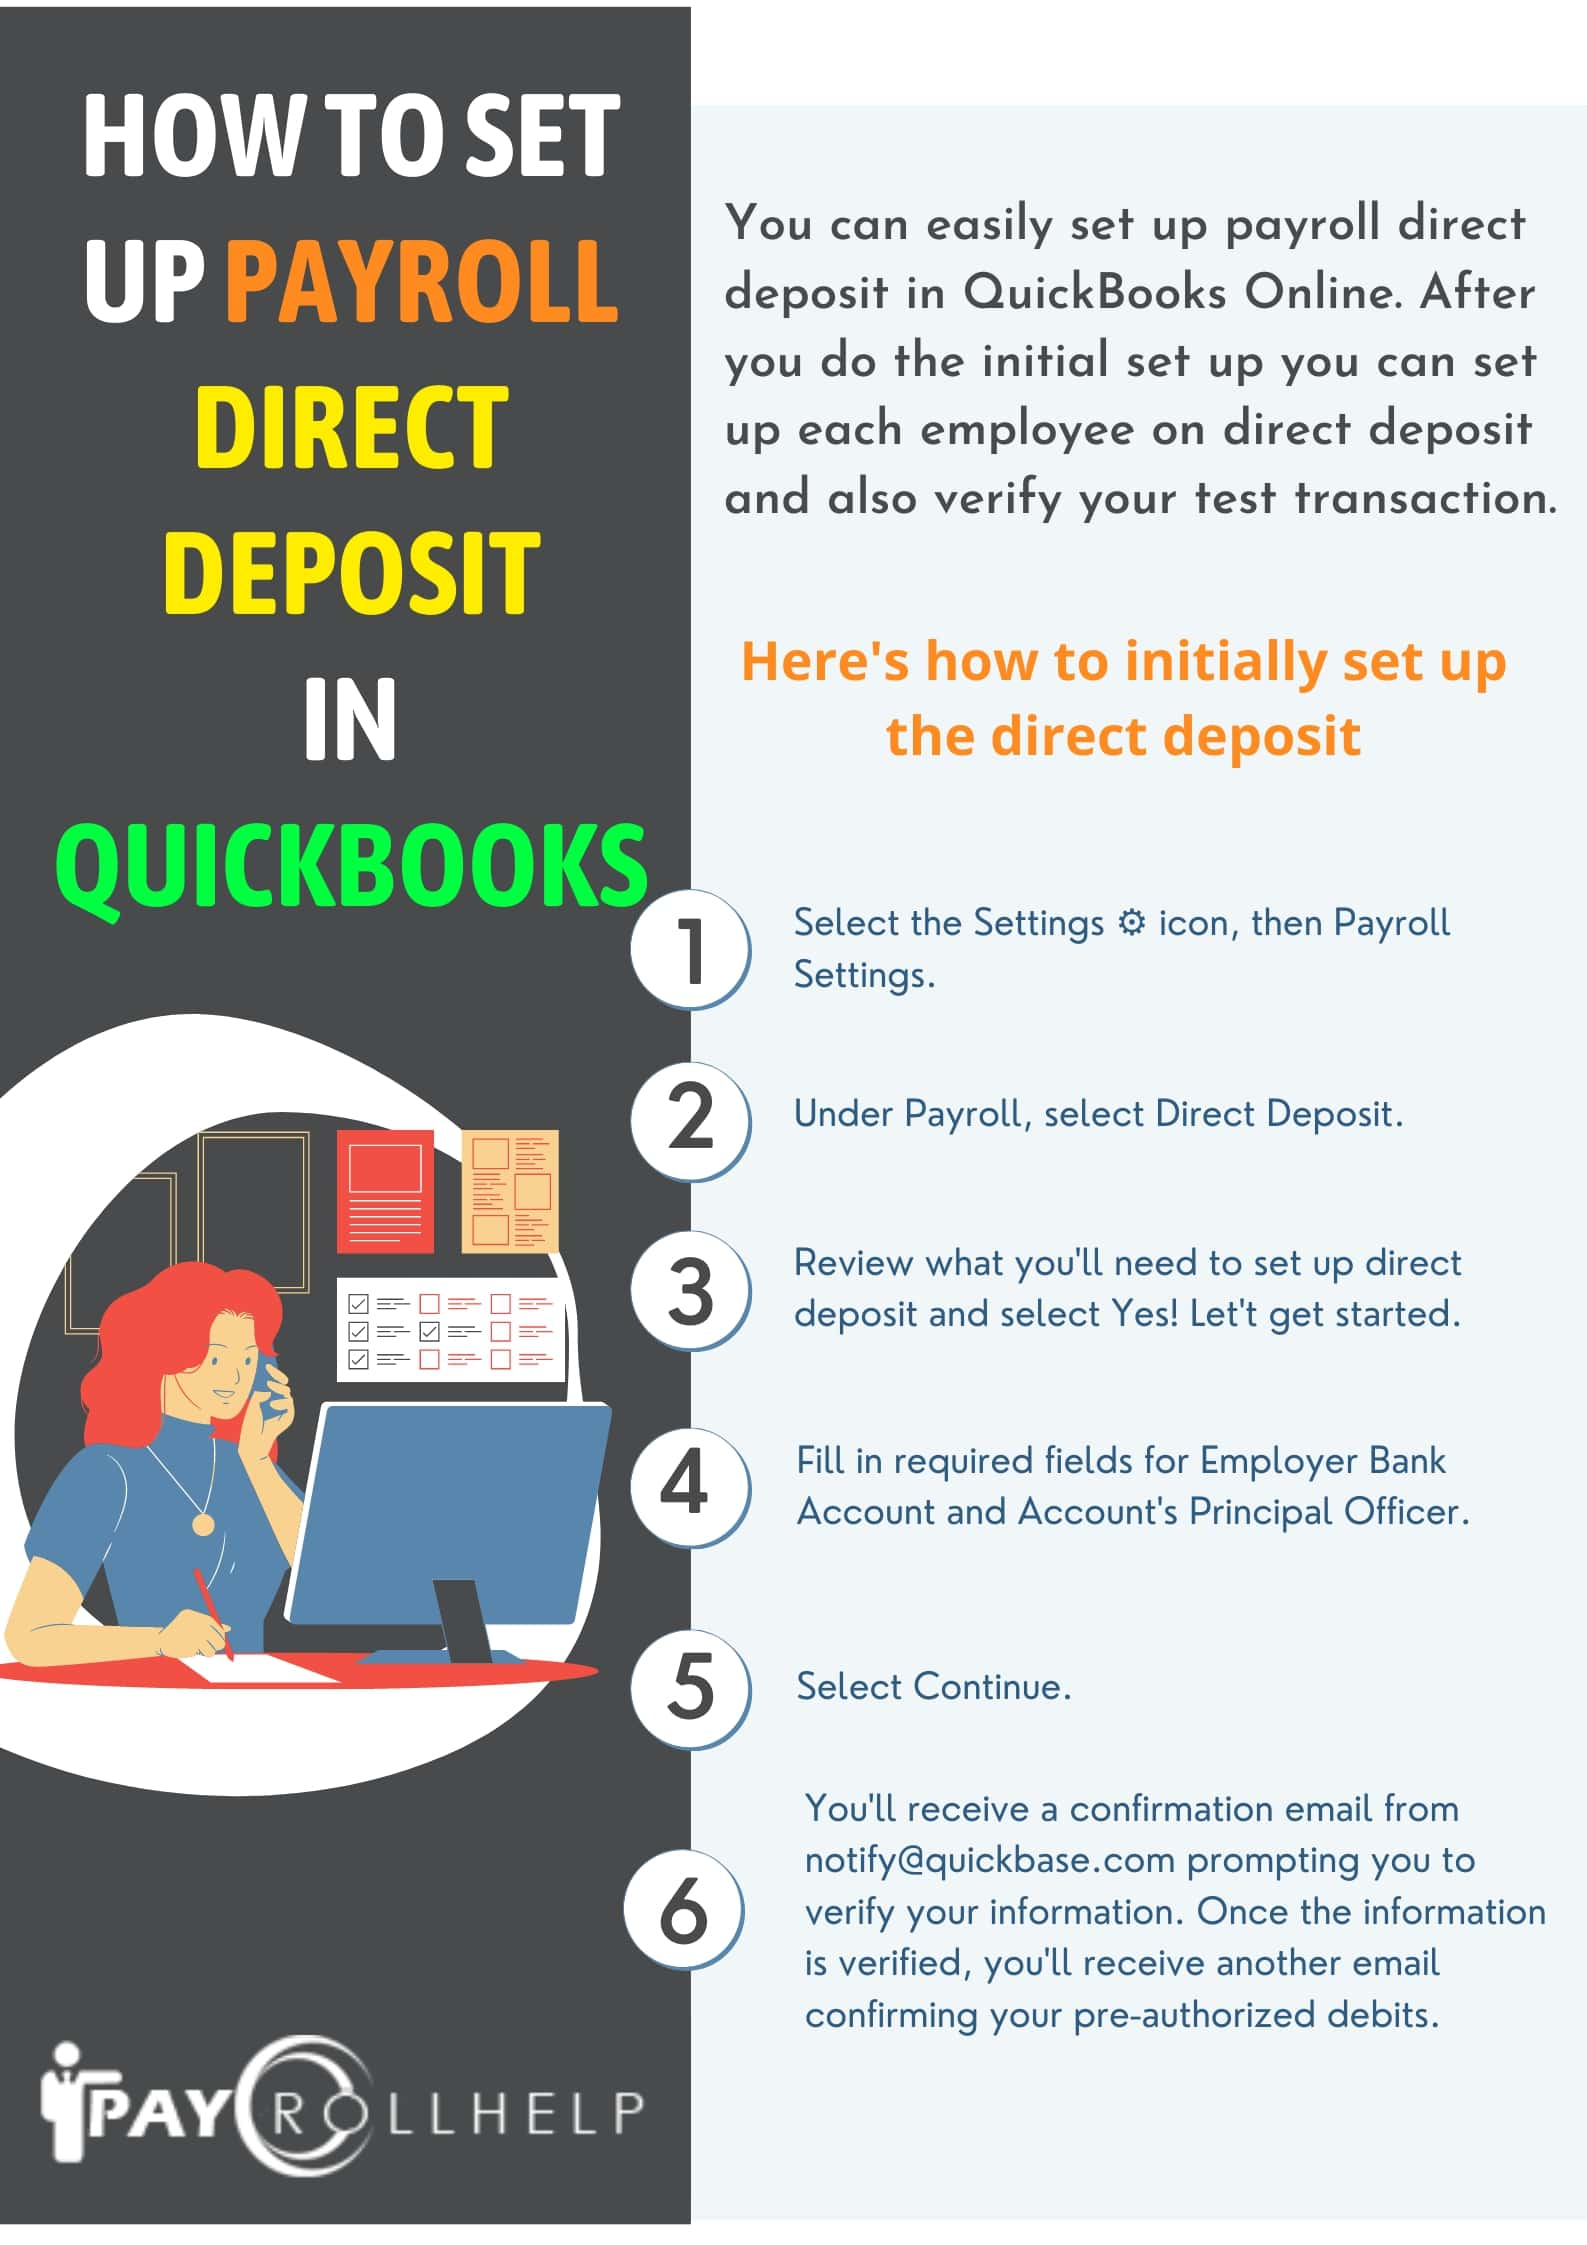 Infographics: How To Set Up Payroll Direct Deposit In Quickbooks